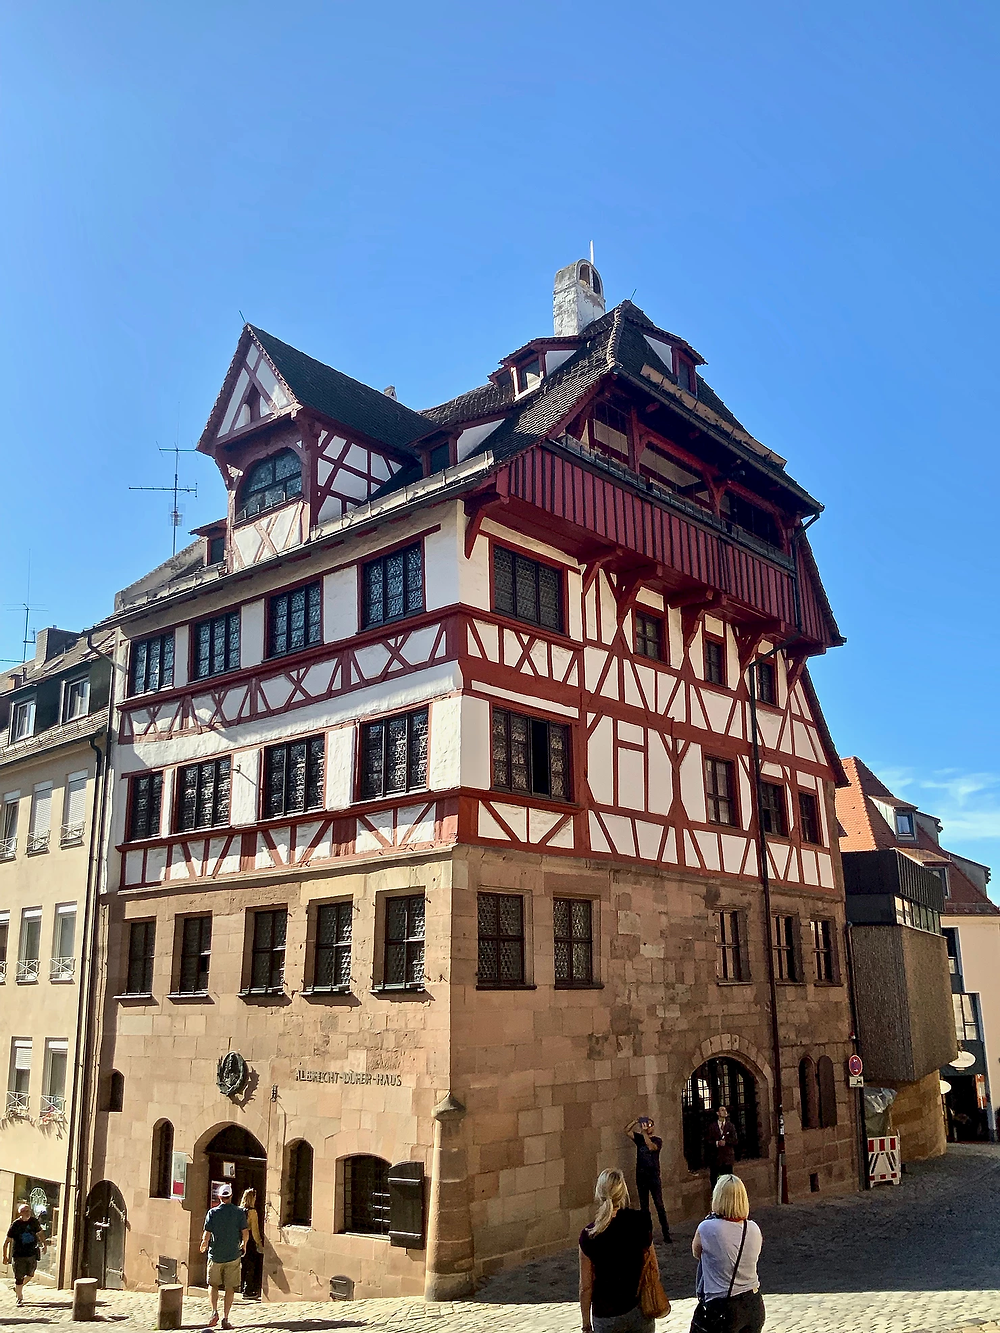 Albrecht Durer Museum in Nuremberg. Check your bag if you want to enter.